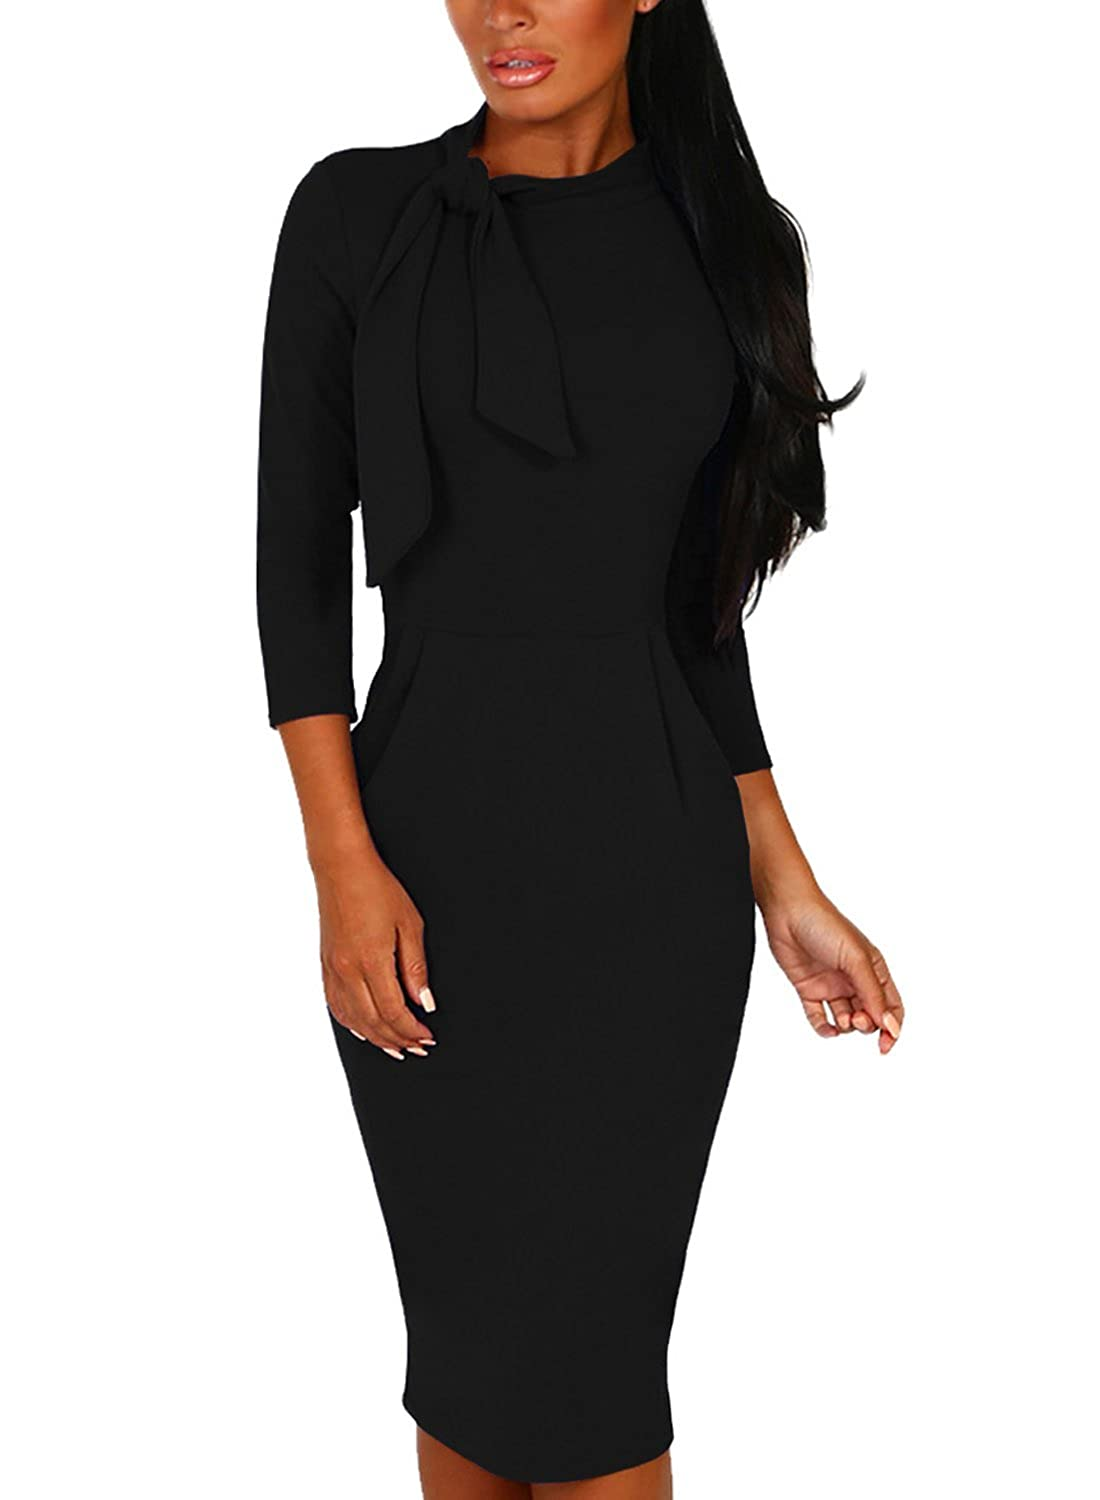 e736fd552e8 Womens bodycon cocktail dresses with sleeves. Features Tie crew neck